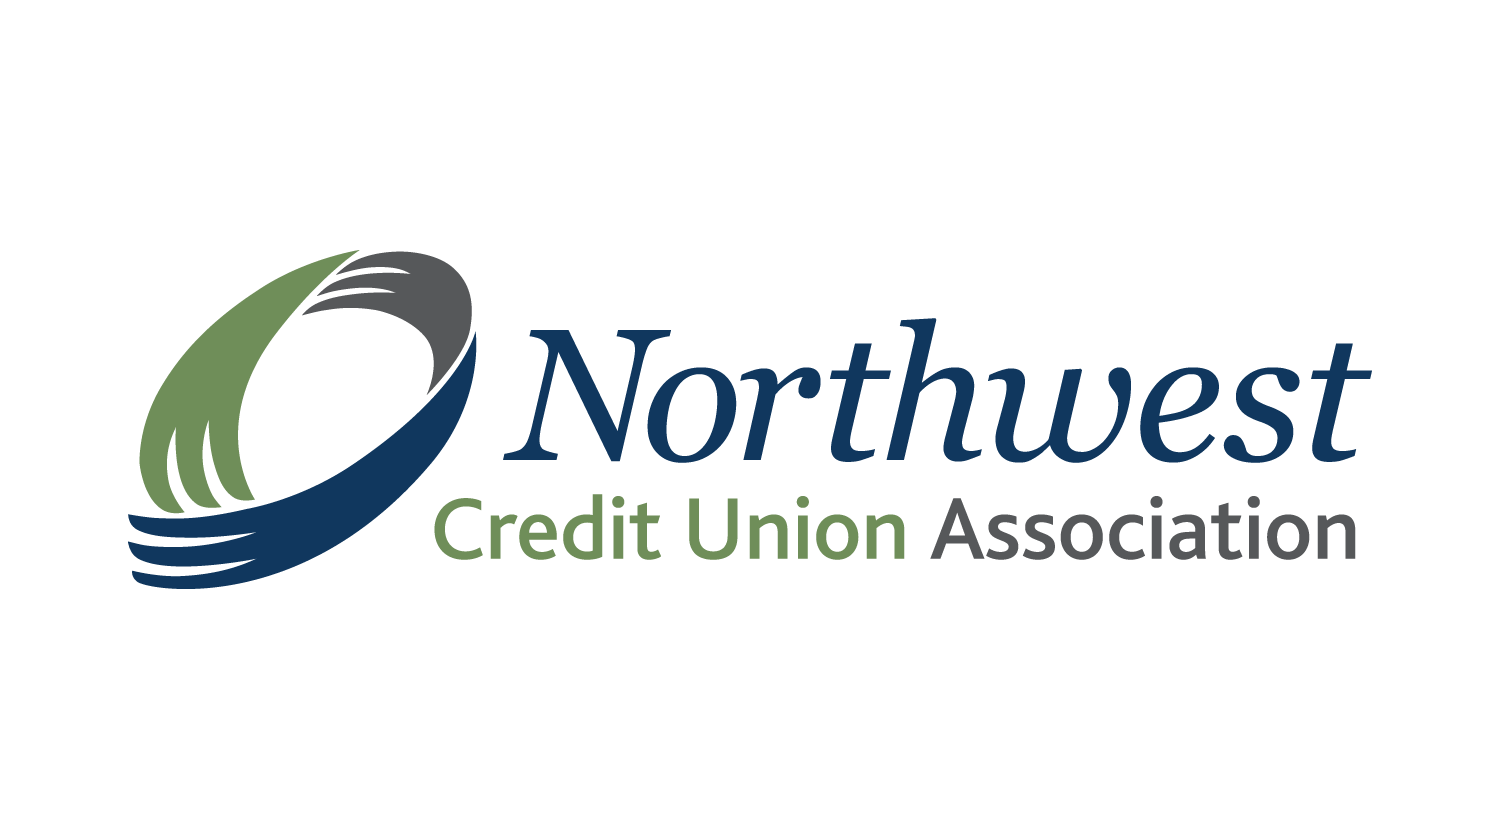 NWCUA - Northwest Credit Union Association